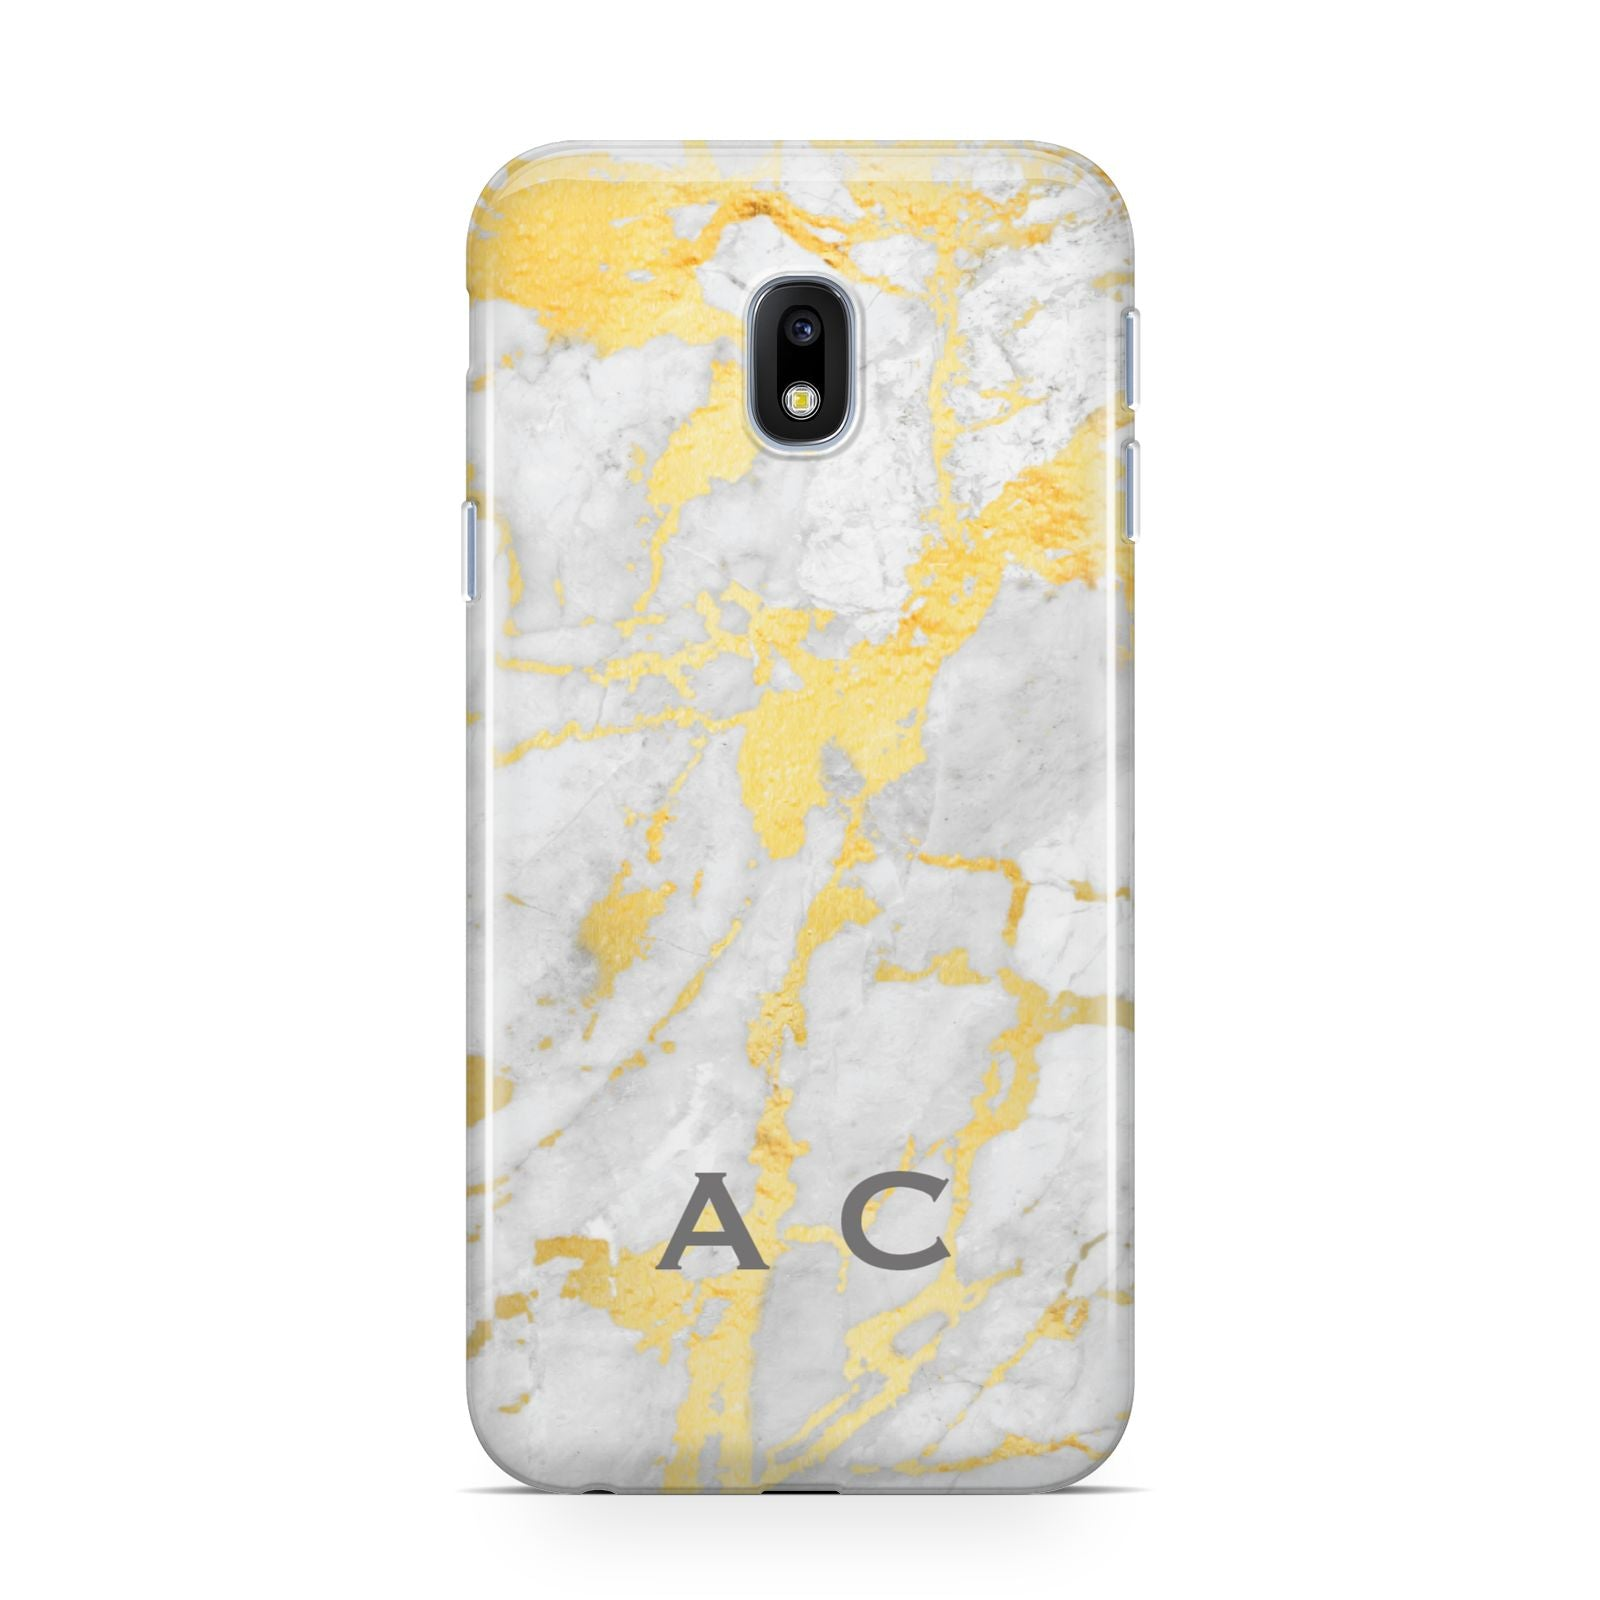 Gold Marble Initials Personalised Samsung Galaxy J3 2017 Case